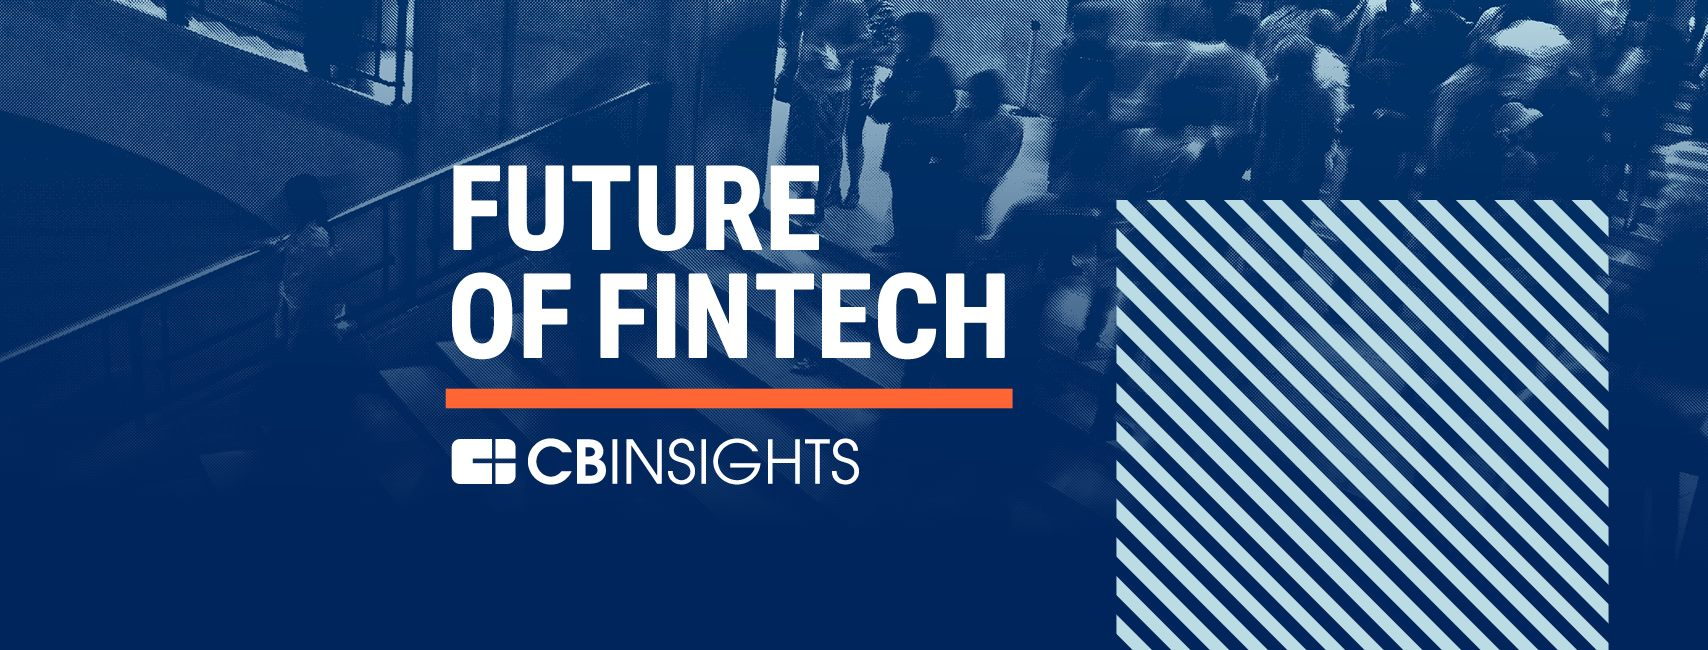 Future of Fintech 2018 - NYC - CBINSIGHTS